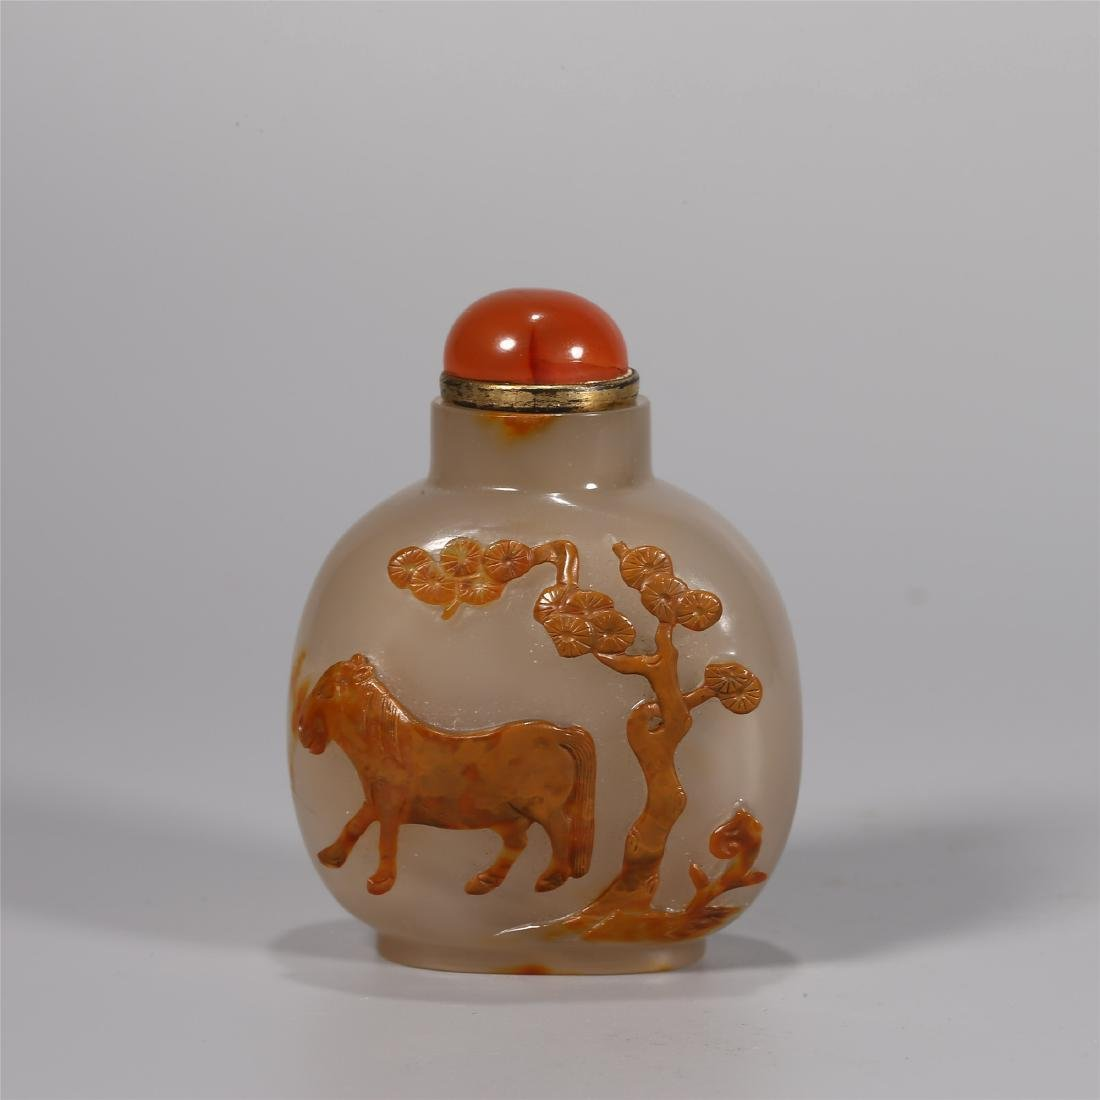 A CHINESE AGATE SNUFF BOTTLE